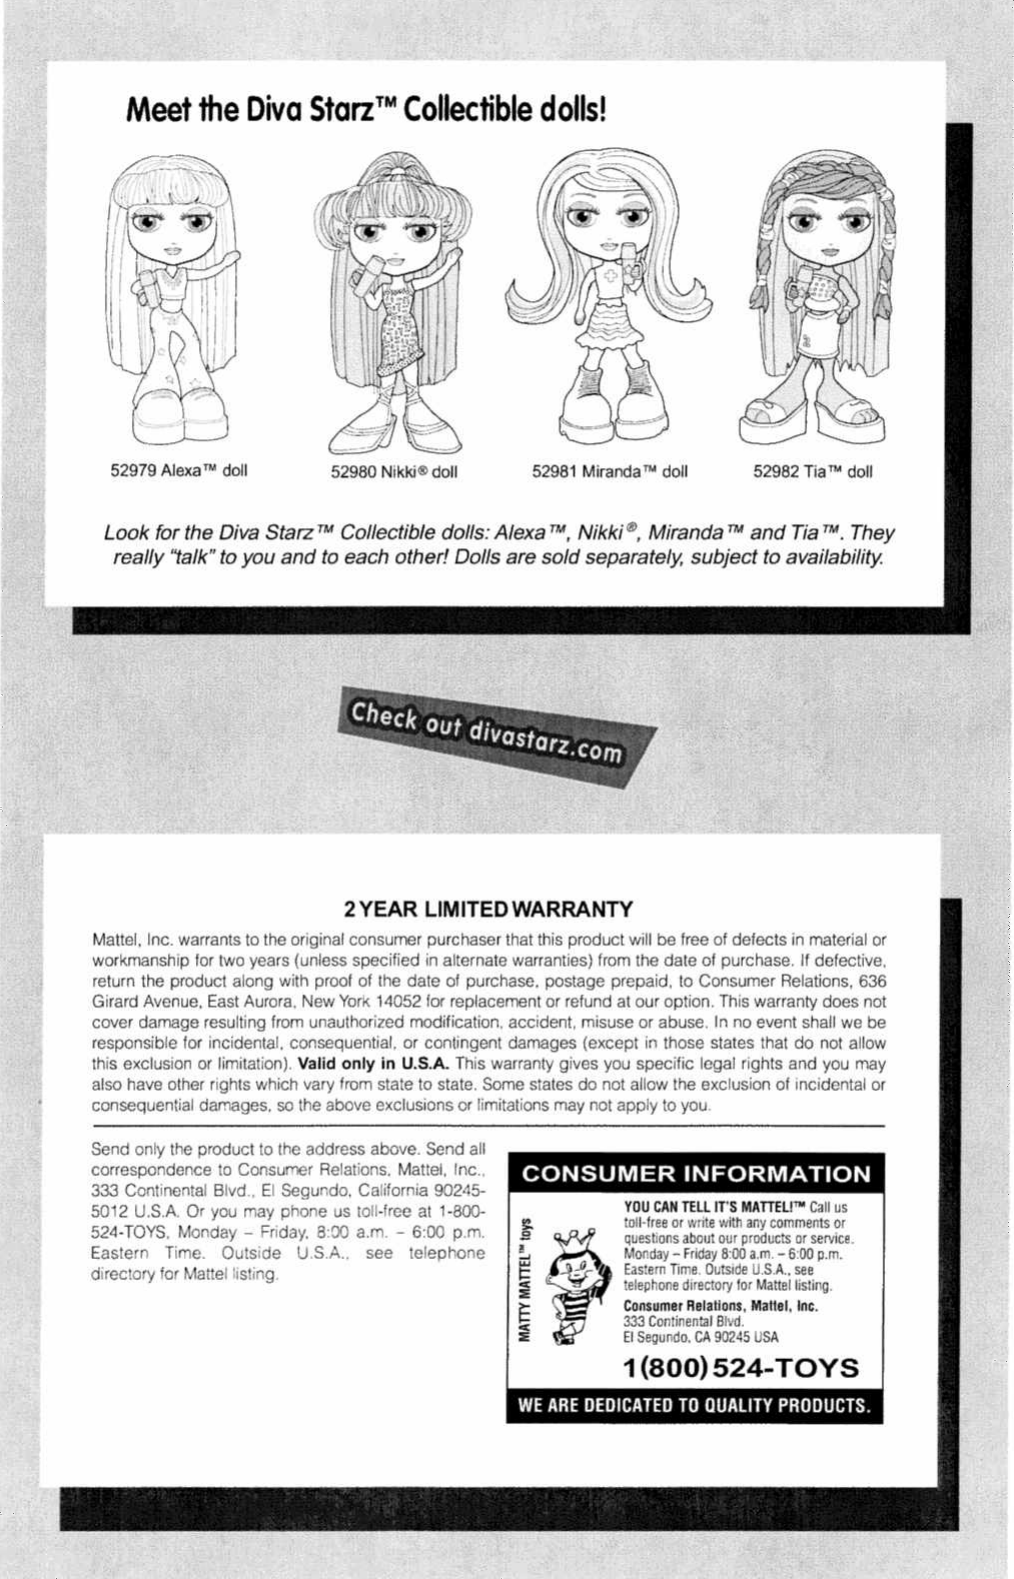 Page 3 of 3 - Mattel Mattel-Diva-Starz-55200-0920-Users-Manual-  Mattel-diva-starz-55200-0920-users-manual